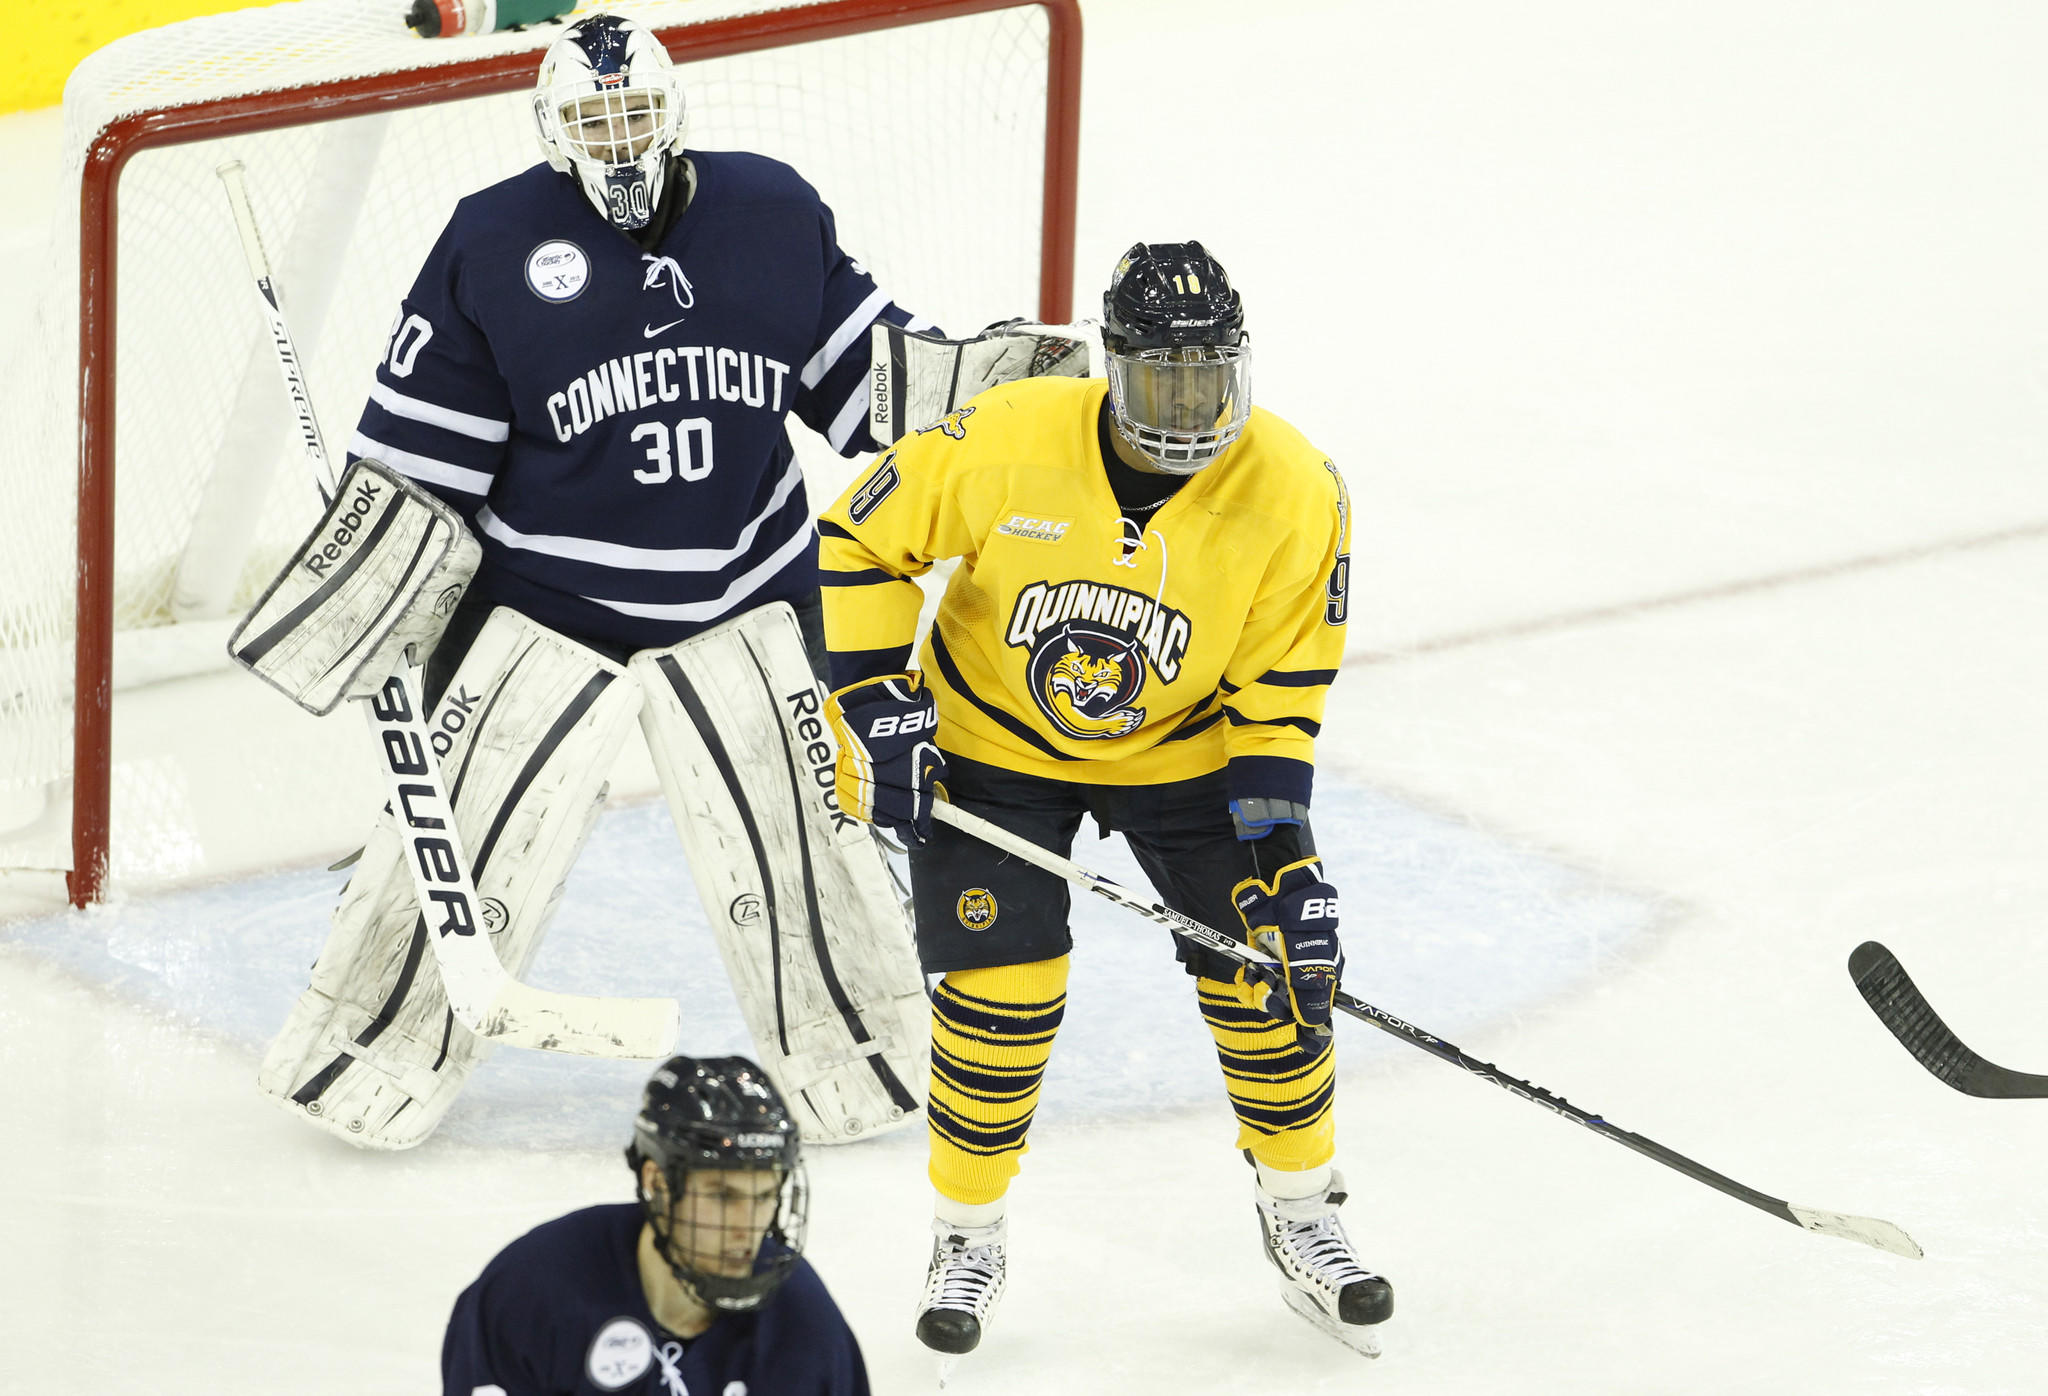 Hamden, CT 01/22/13; Connecticut Huskies goaltender Matt Grogan (30) watches the play with Quinnipiac Bobcats forward Jordan Samuels-Thomas (19) during the third period at the TD Bank Sports Center. Quinnipiac defeated UConn 2-1. photo by David Butler II